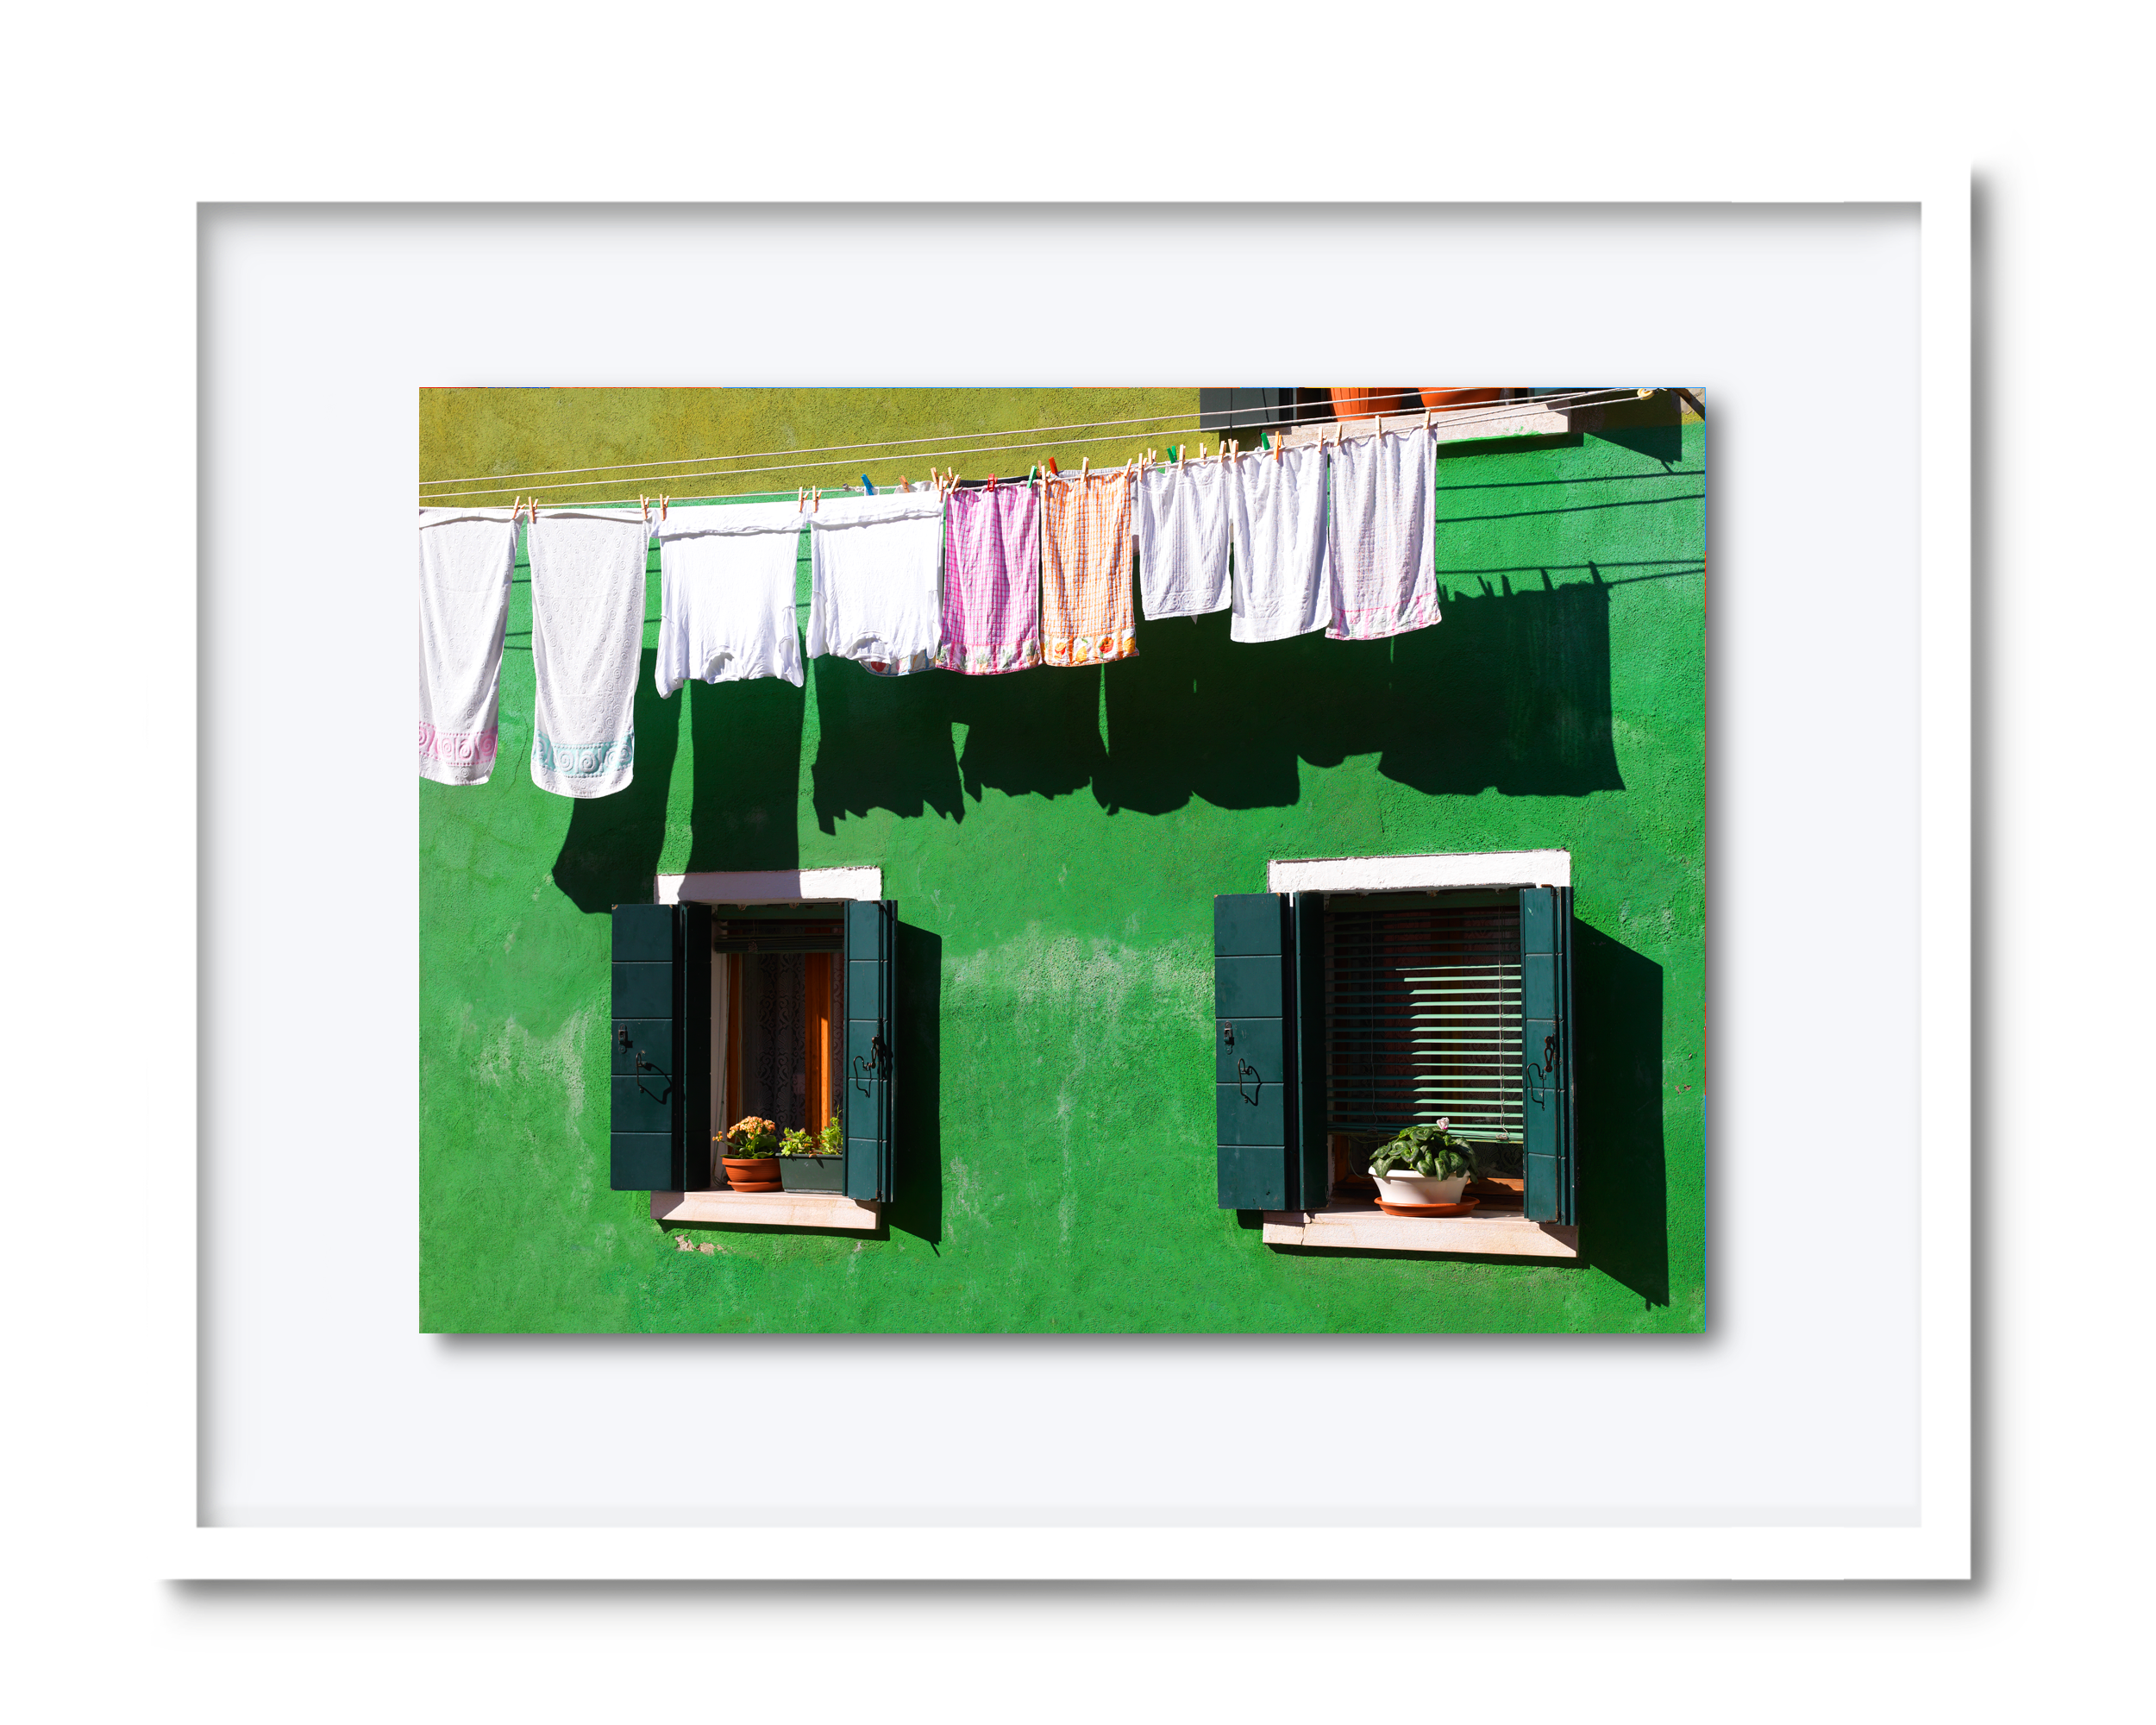 13.david-pearce-colored-building-venice2.png